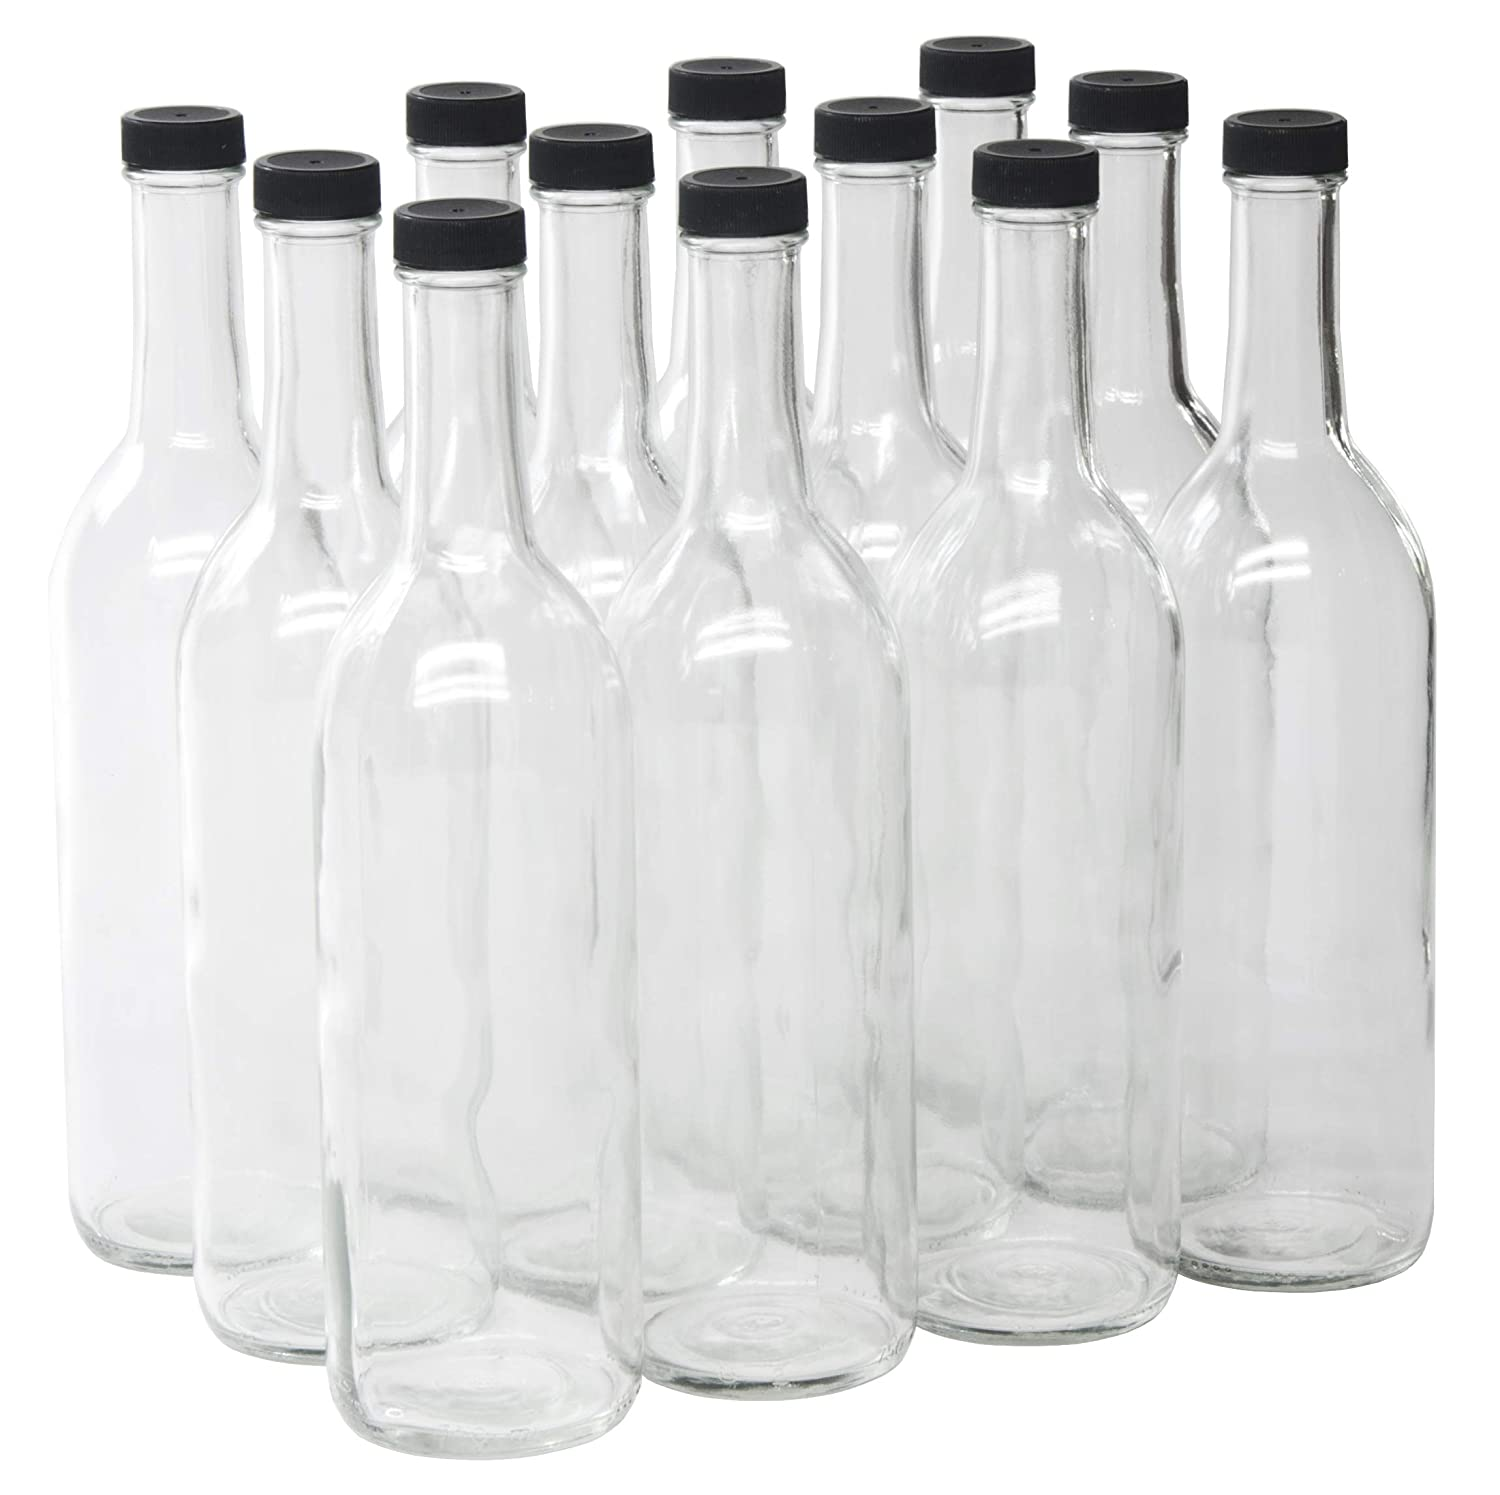 fa52f356615a North Mountain Supply 750ml Clear Glass Bordeaux Wine Bottle Flat-Bottomed  Screw-Top Finish - with 28mm Black Metal Lids - Case of 12